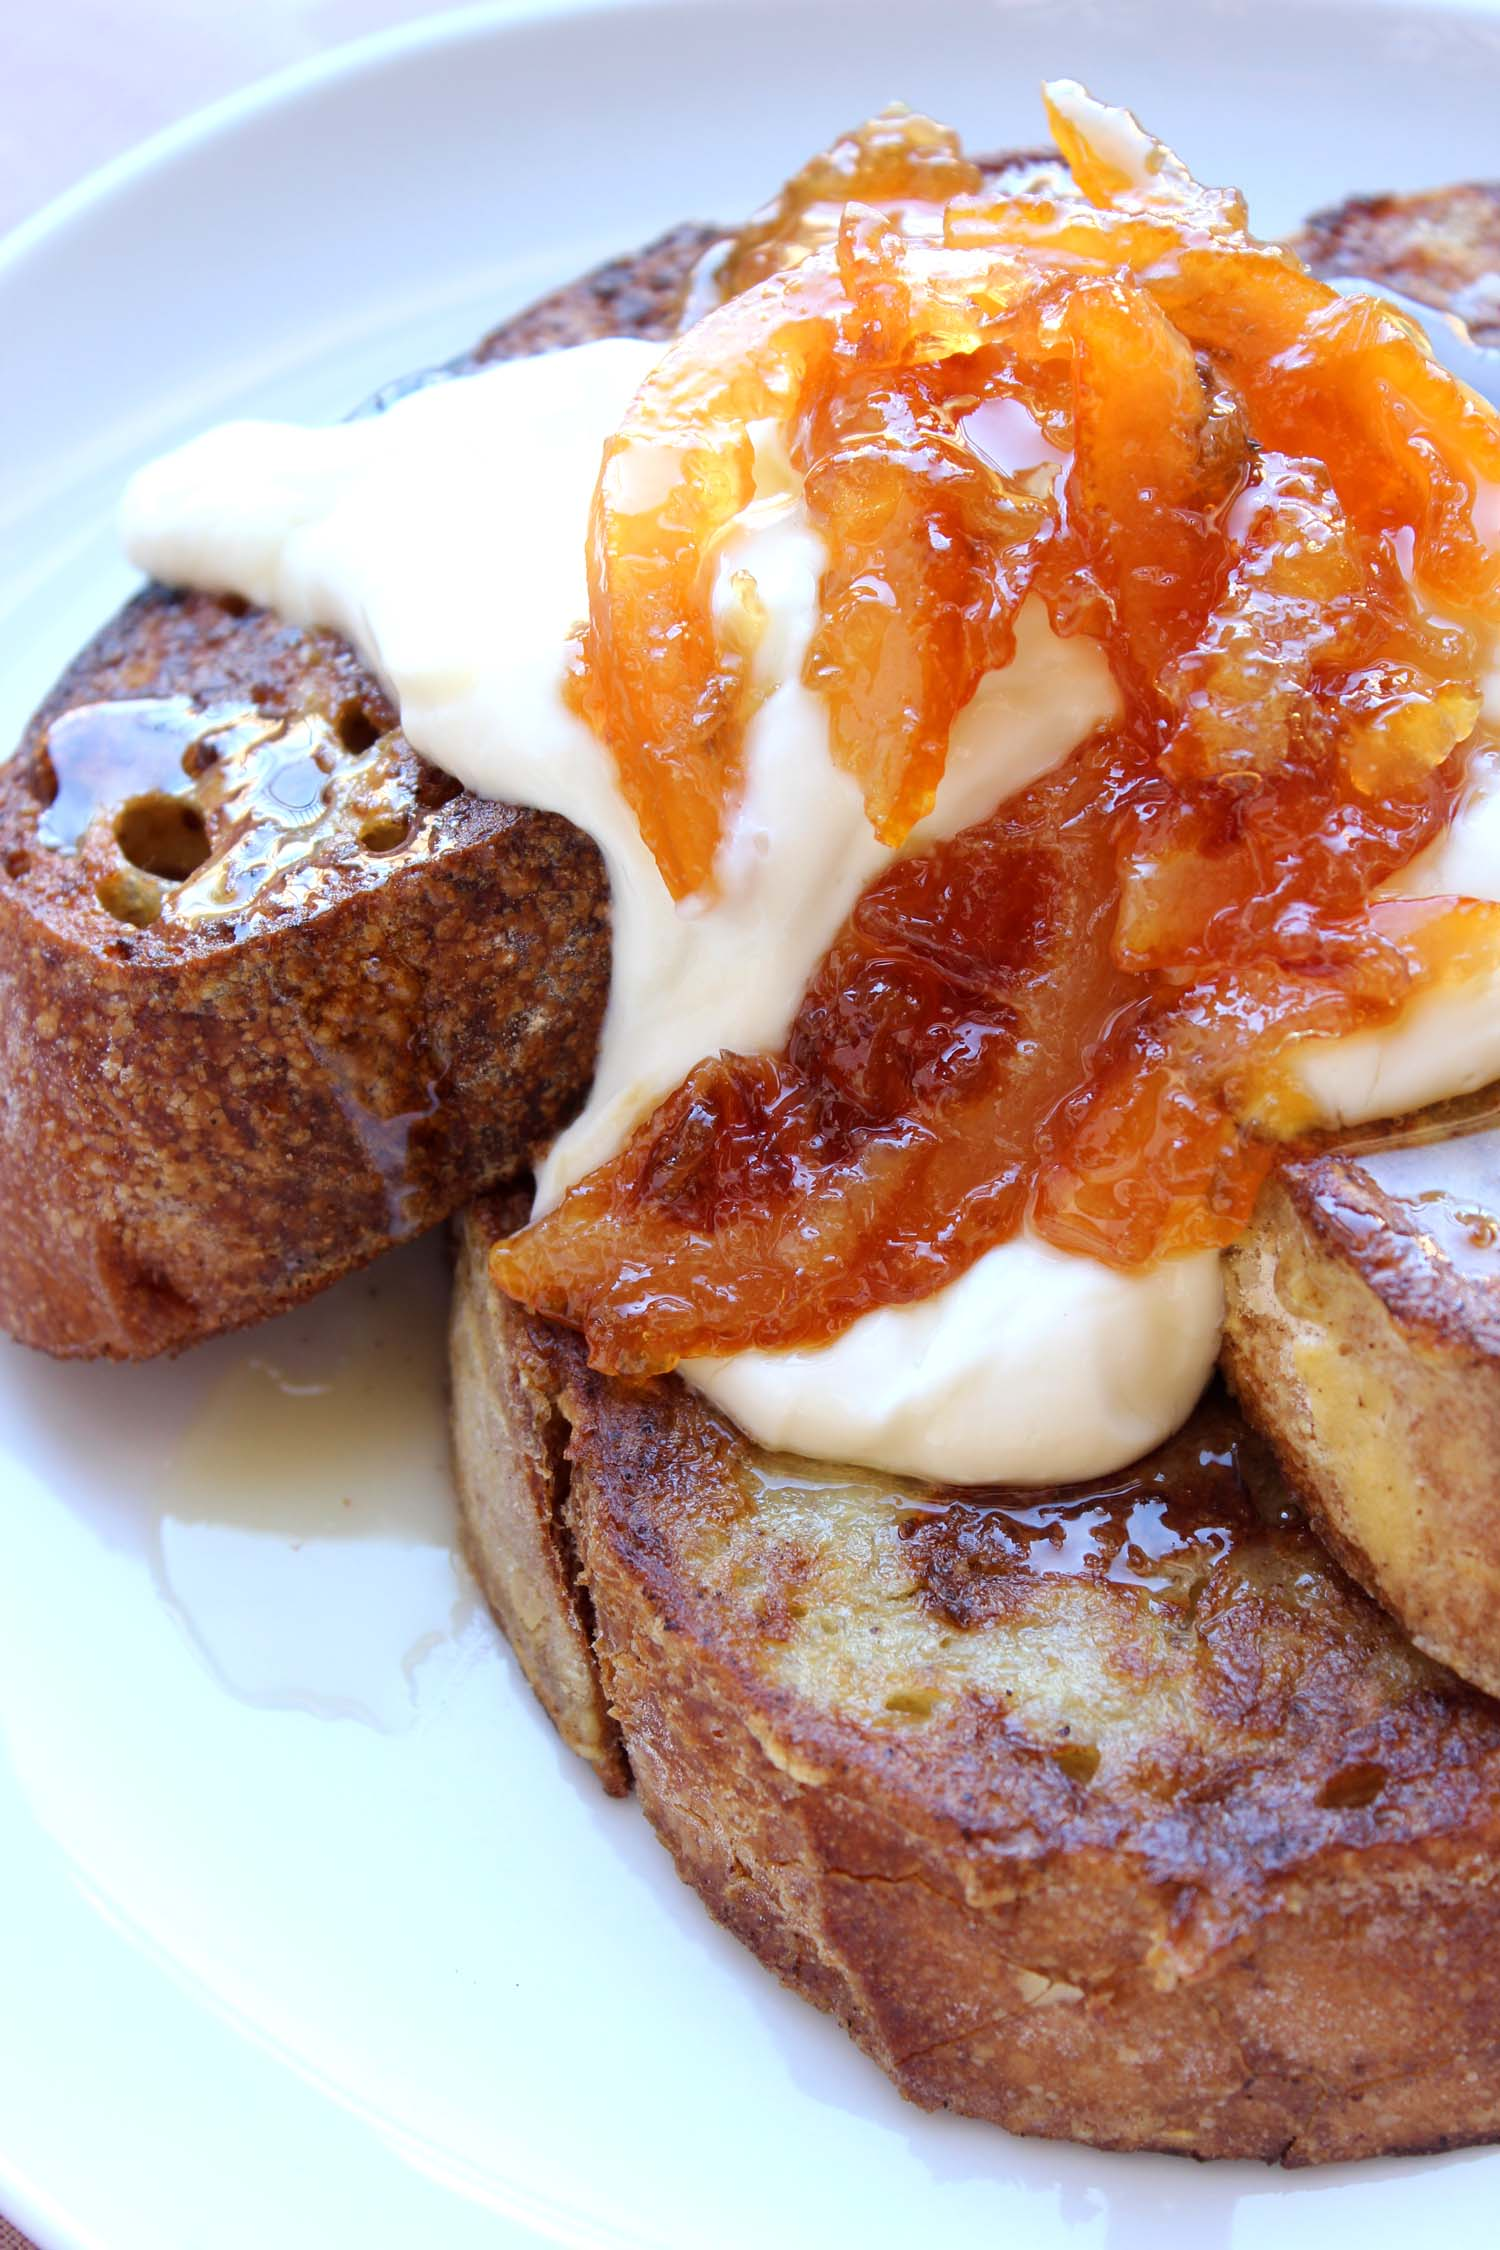 Blood Orange Marmalade French Toast  | Image:  Laura Messersmith